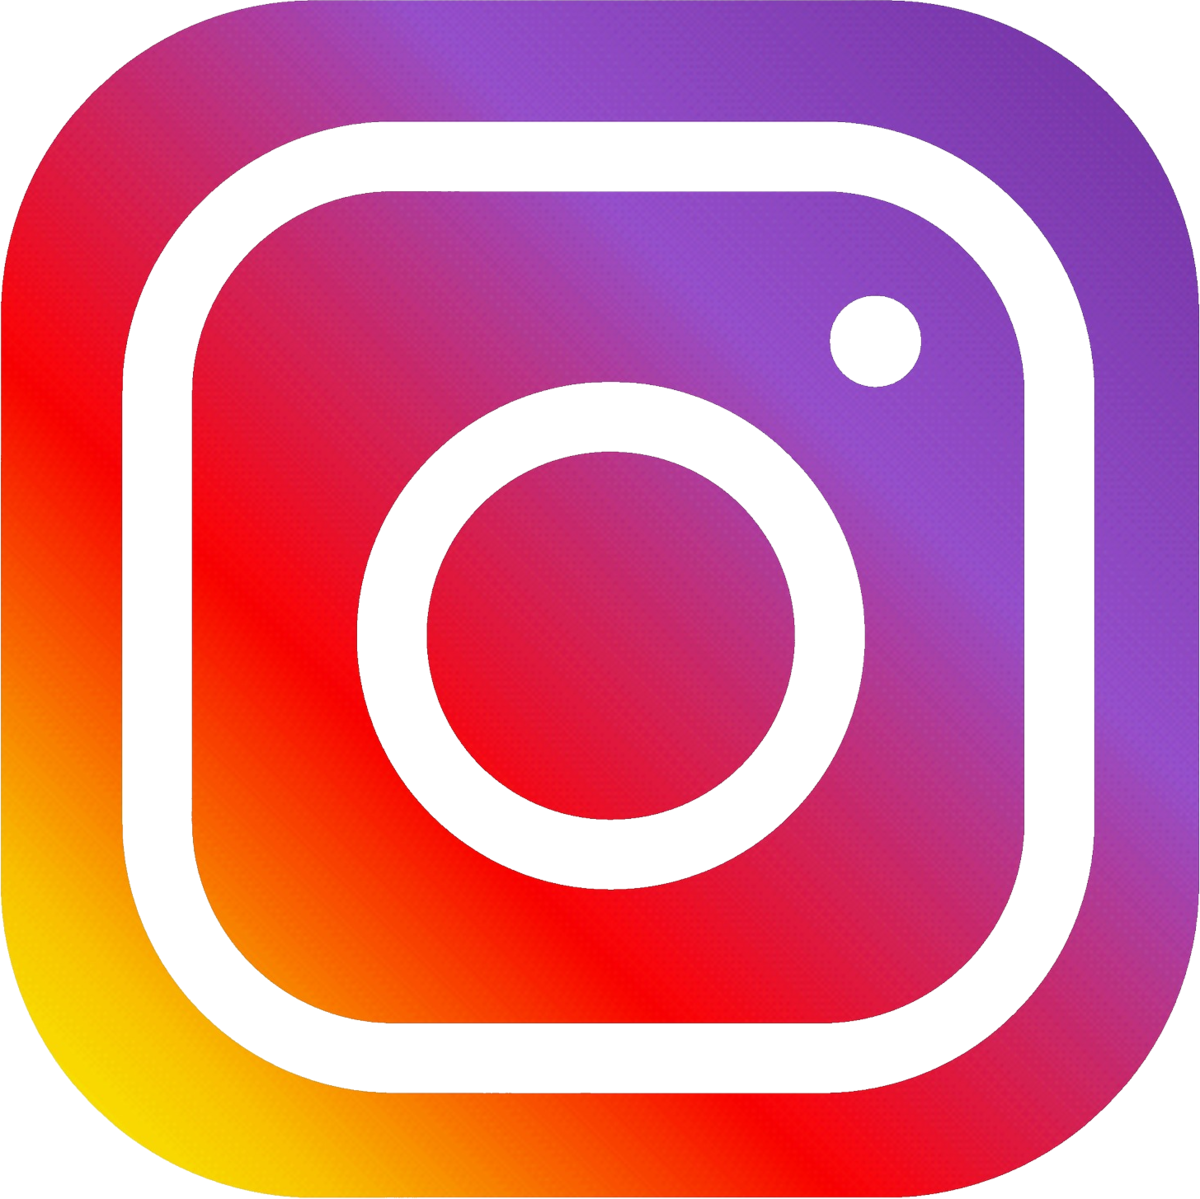 Archivo:Instagram-Icon.png - Wikipedia, la enciclopedia libre